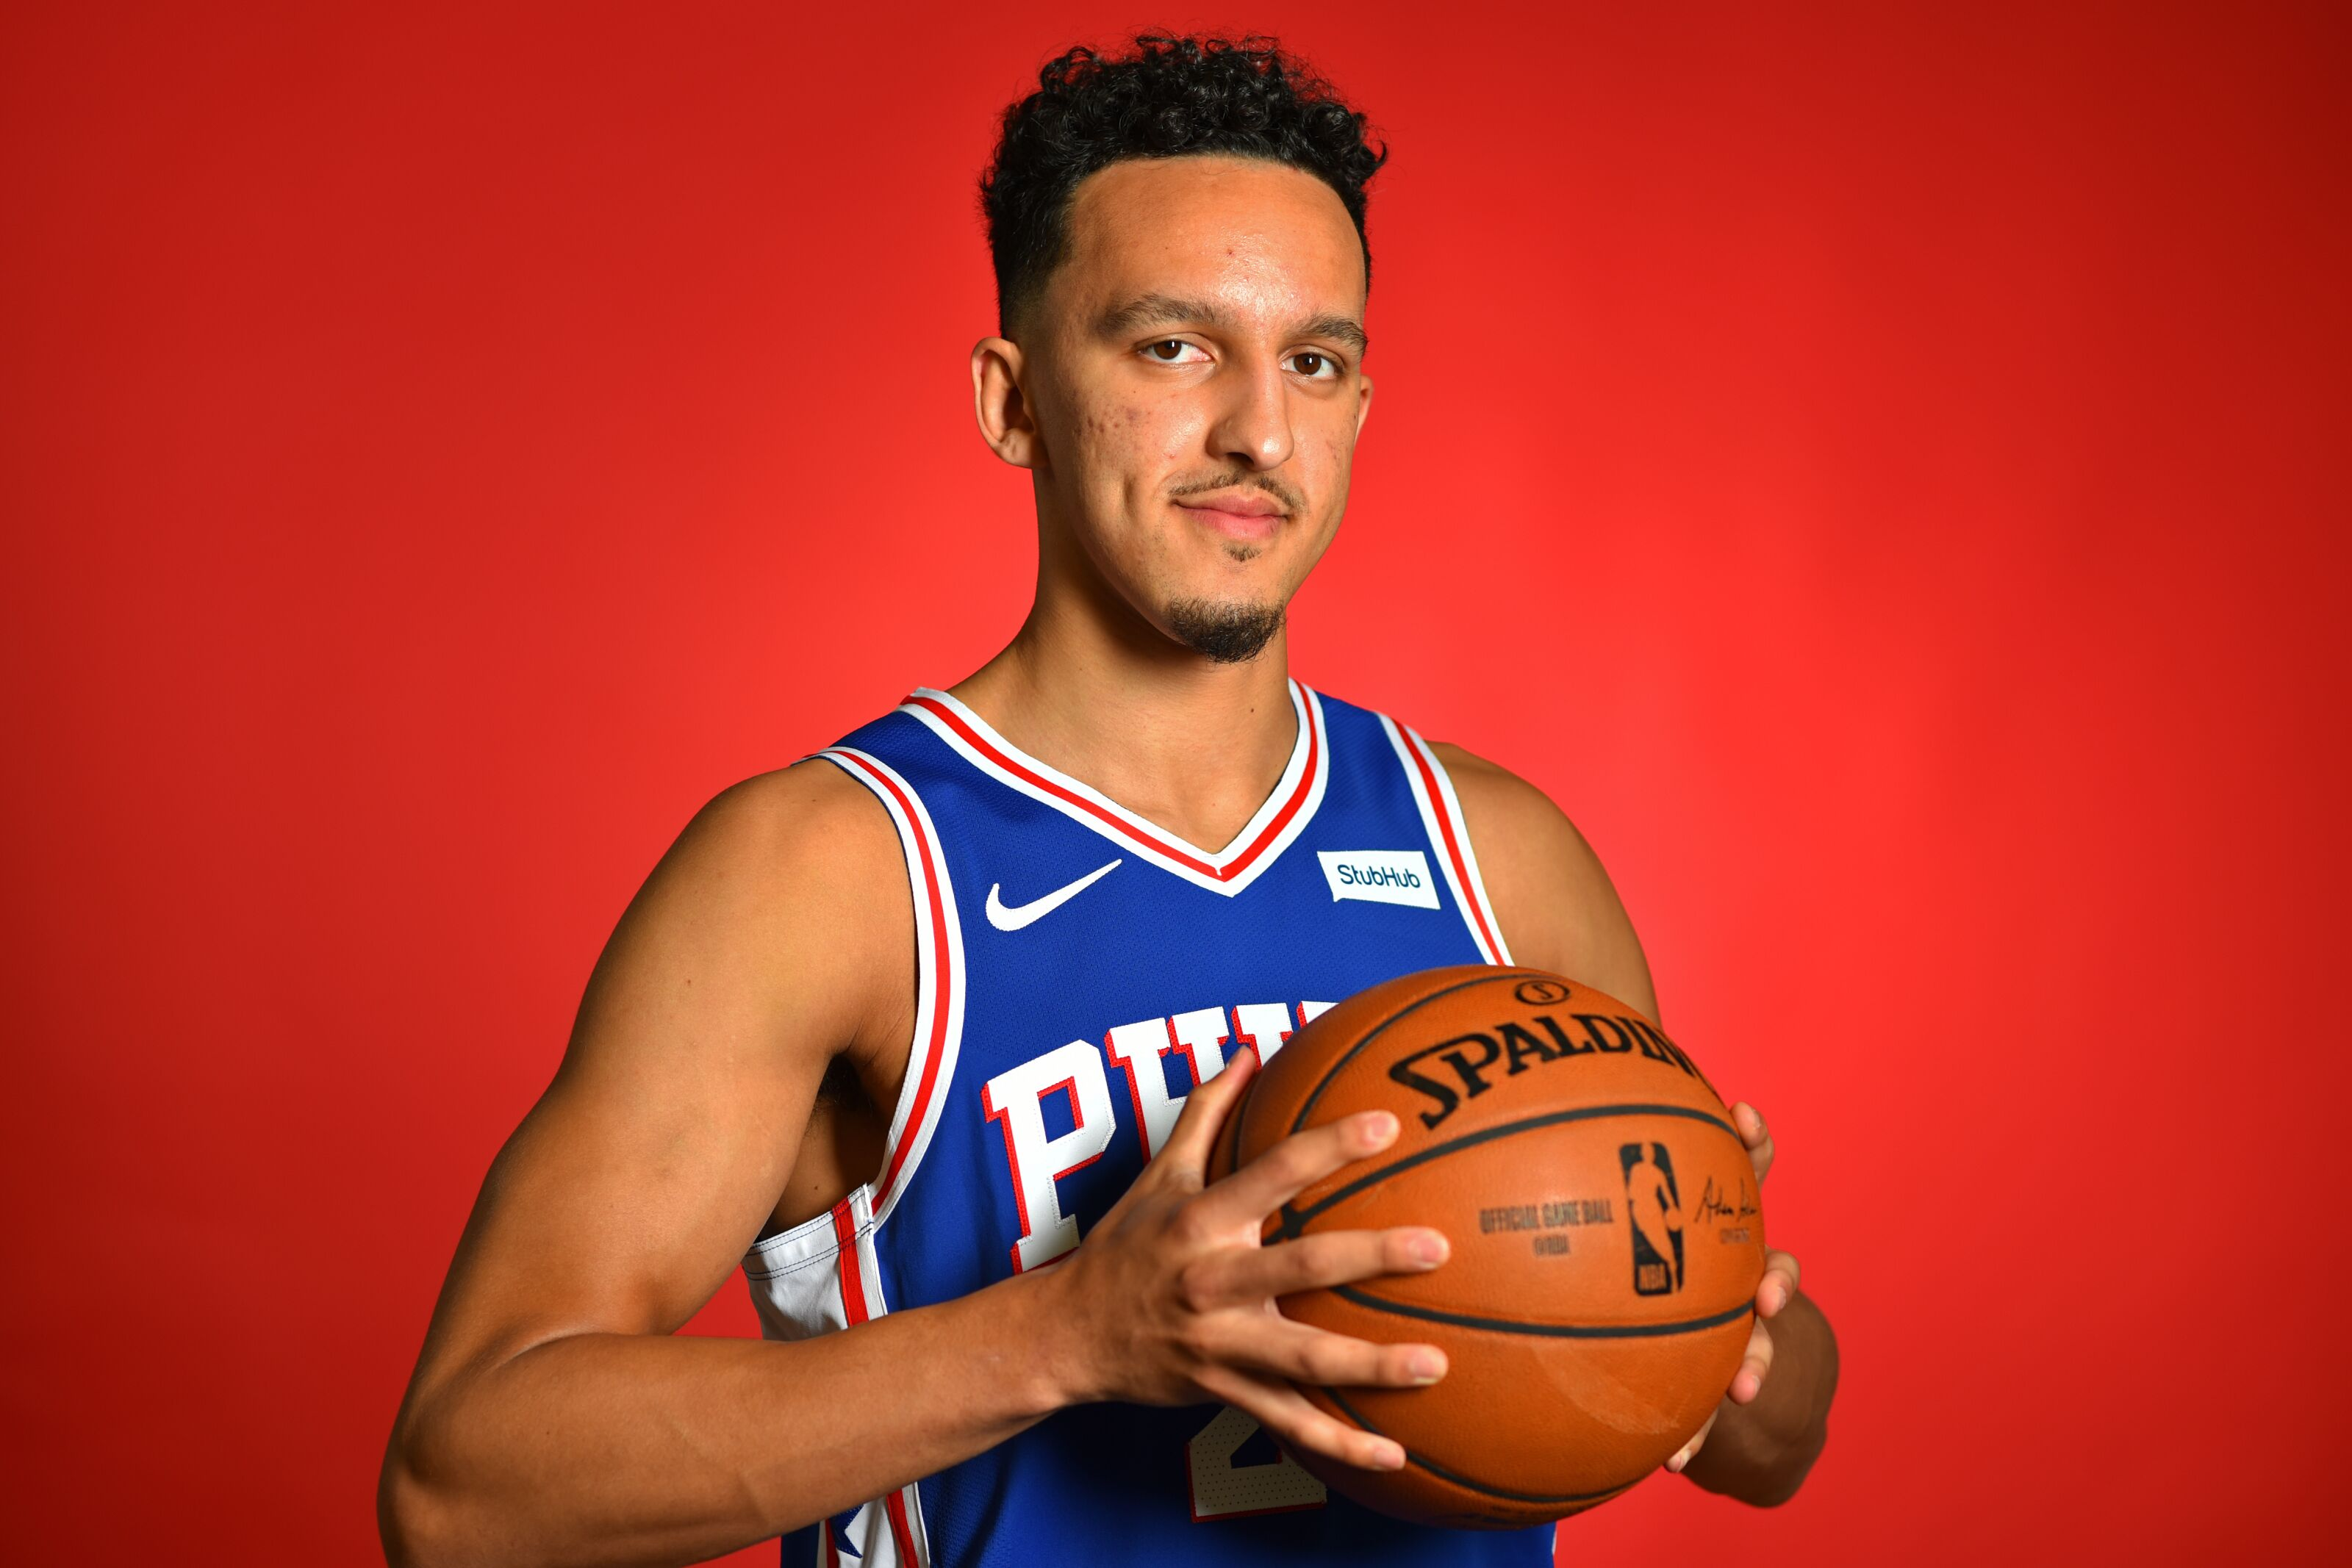 Philadelphia 76ers Landry Shamet Has Perfect Mentor In J